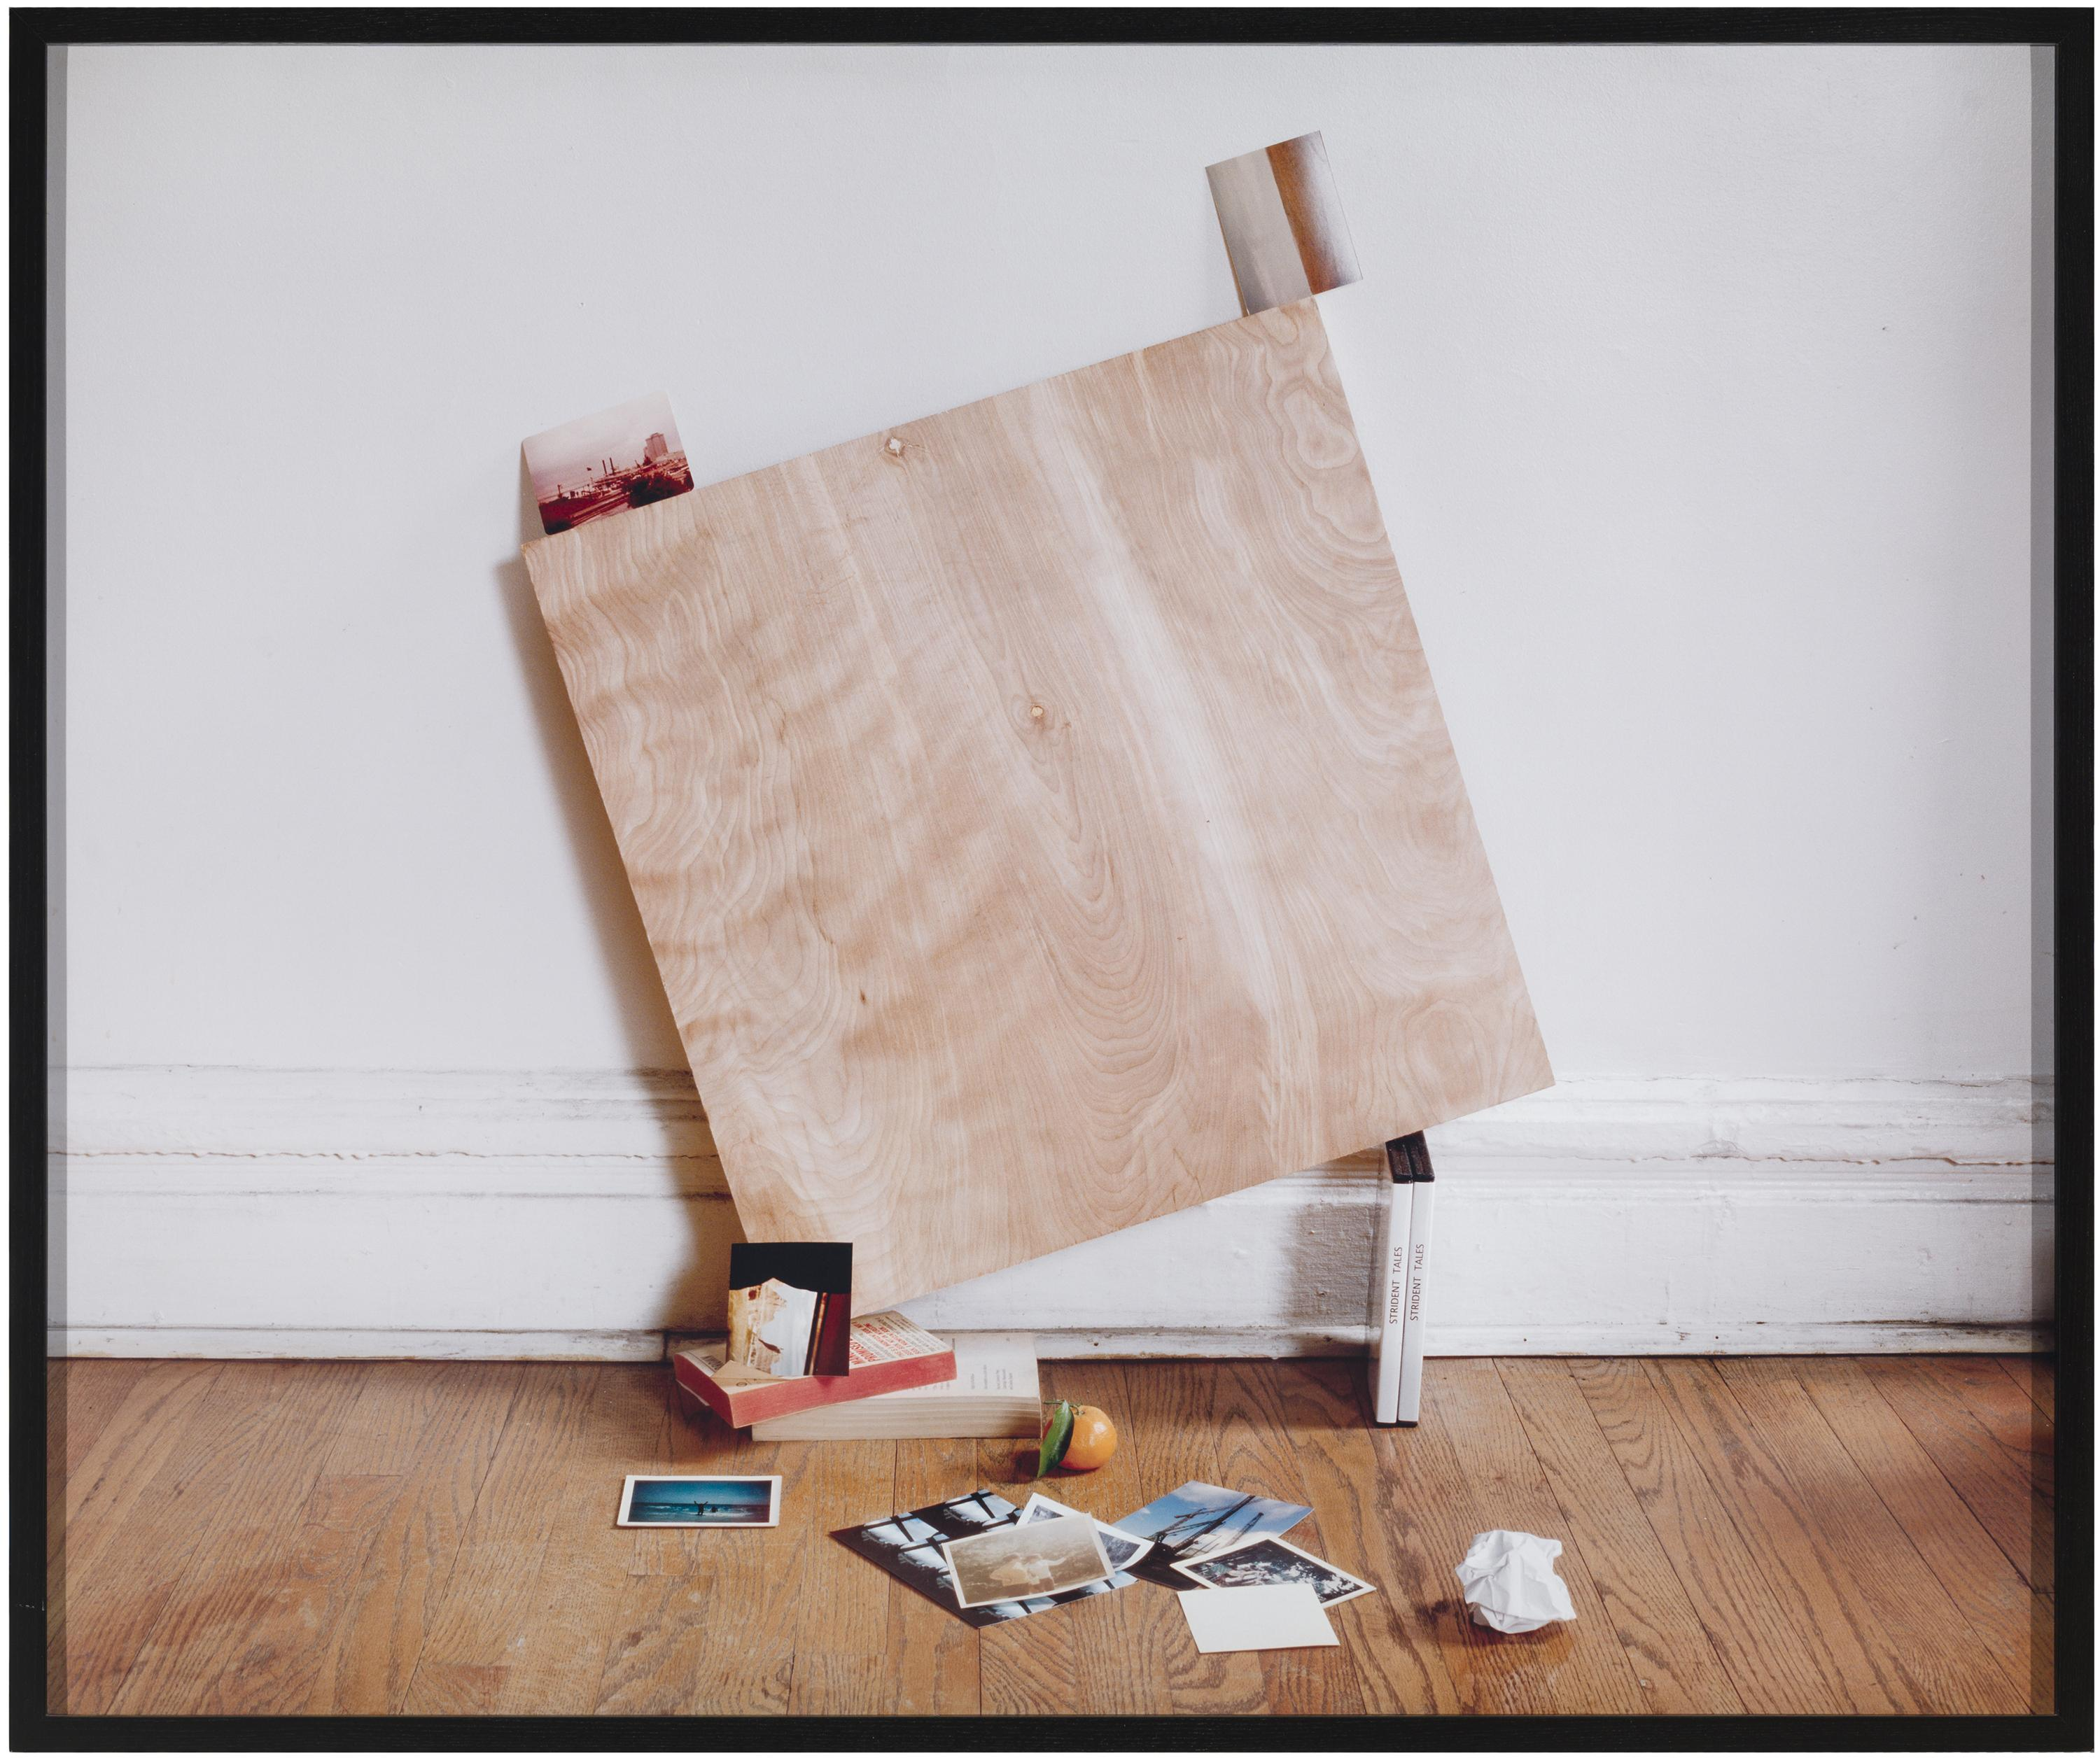 A square, wooden board precariously balanced on books leans against a white wall in a room with a hardwood floor scattered with photos.